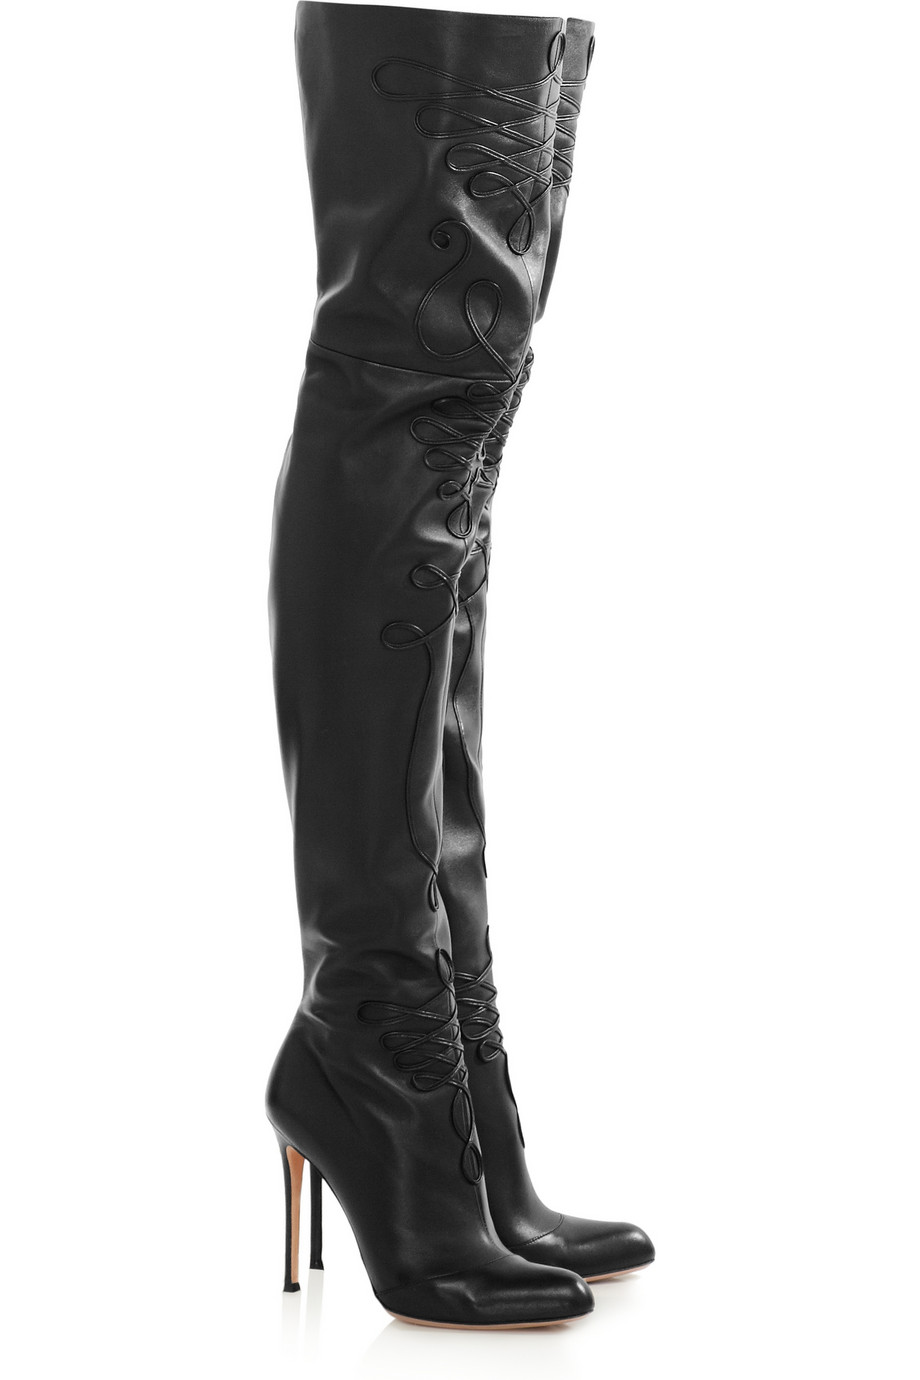 Lyst Altuzarra Embroidered Leather Thigh Boots In Black